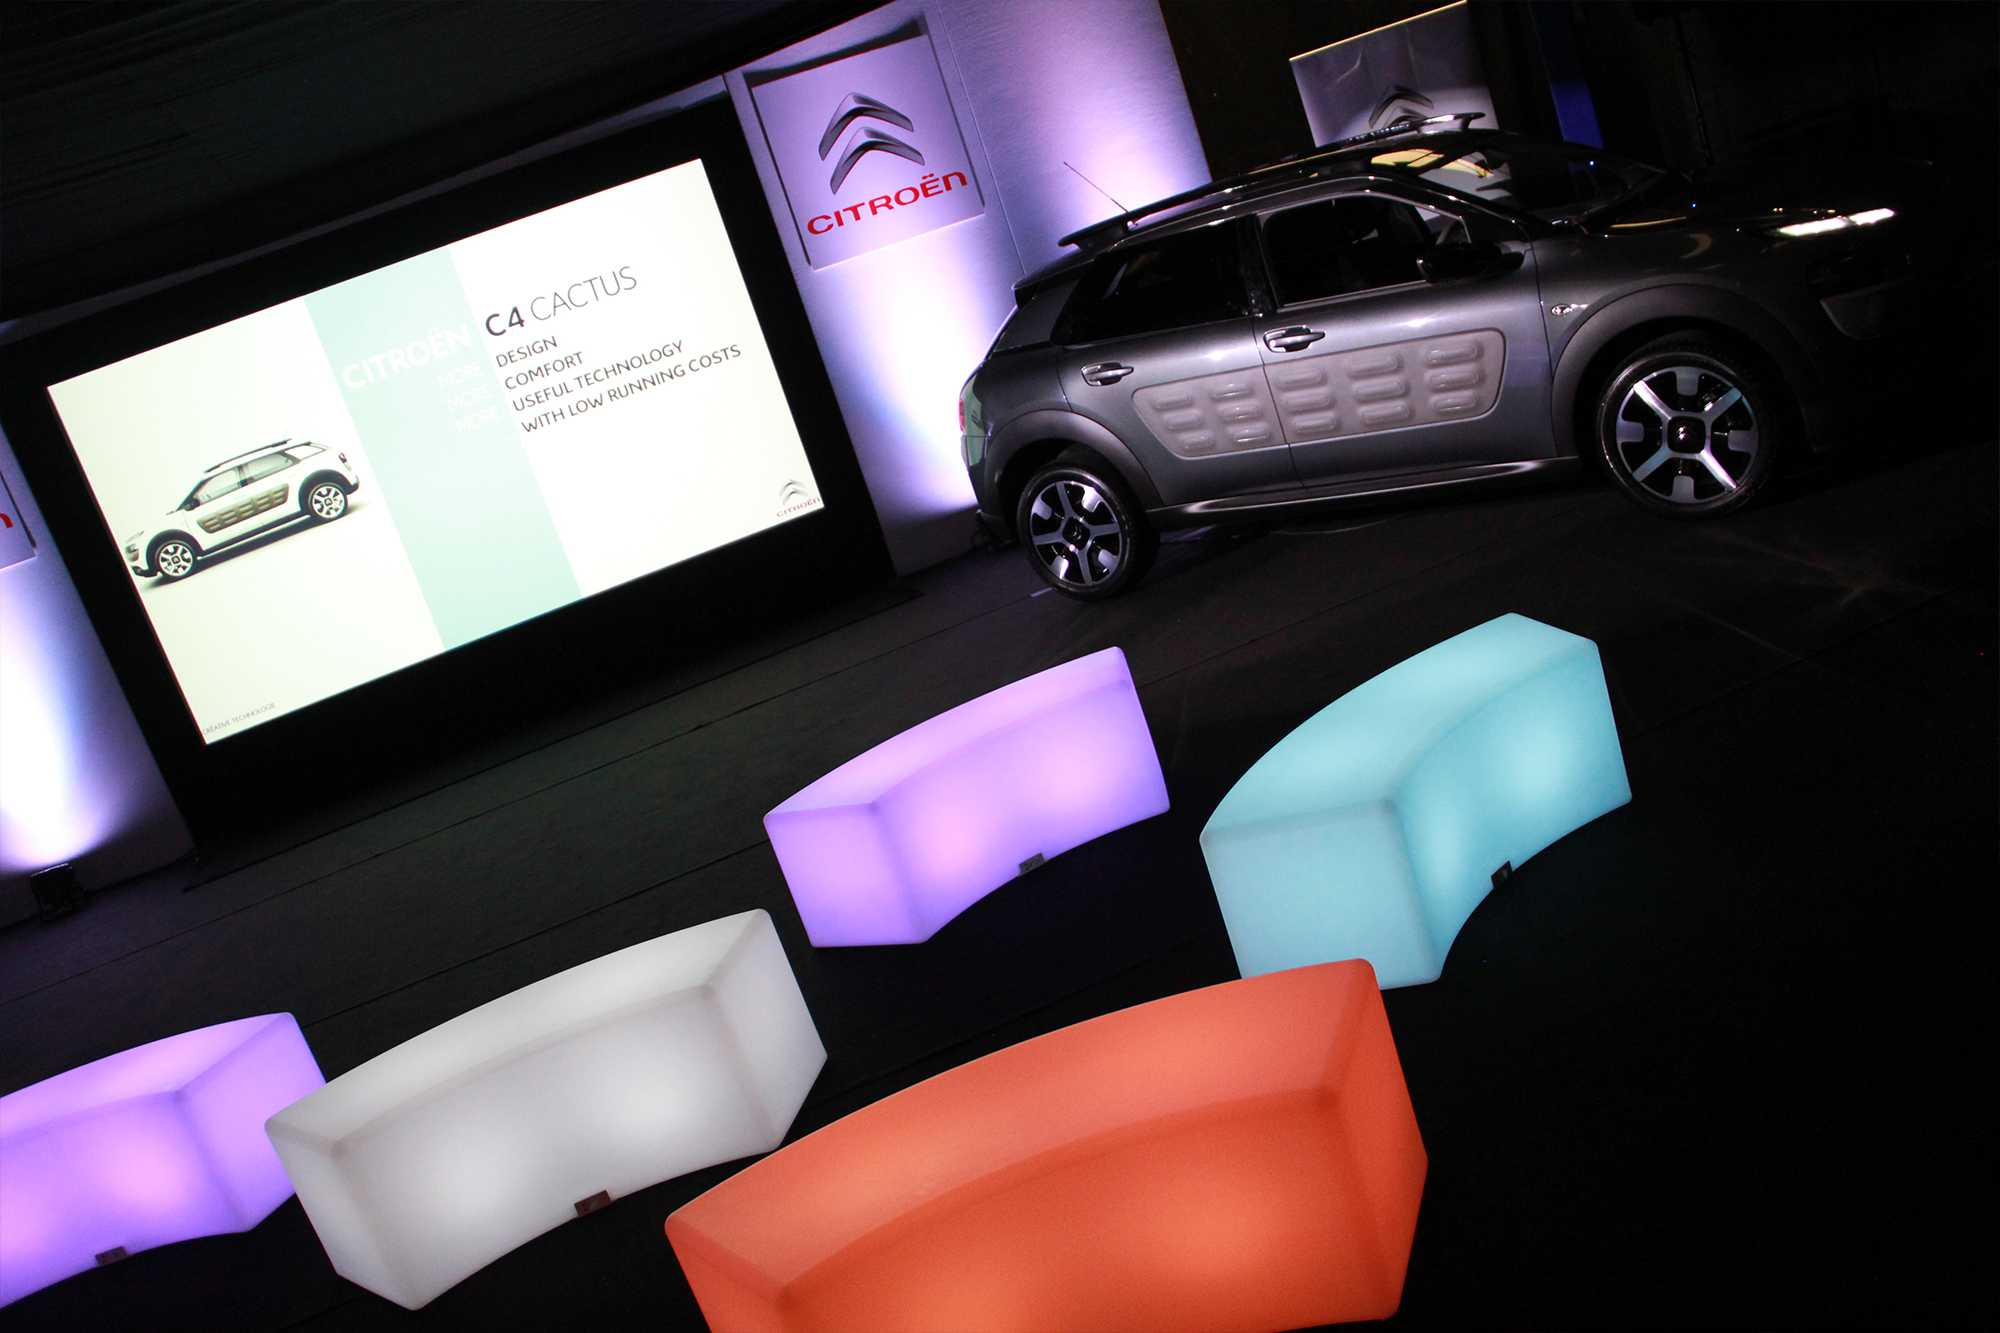 Audio Visual & Exhibition Production for a vehicle launch event near Birmingham